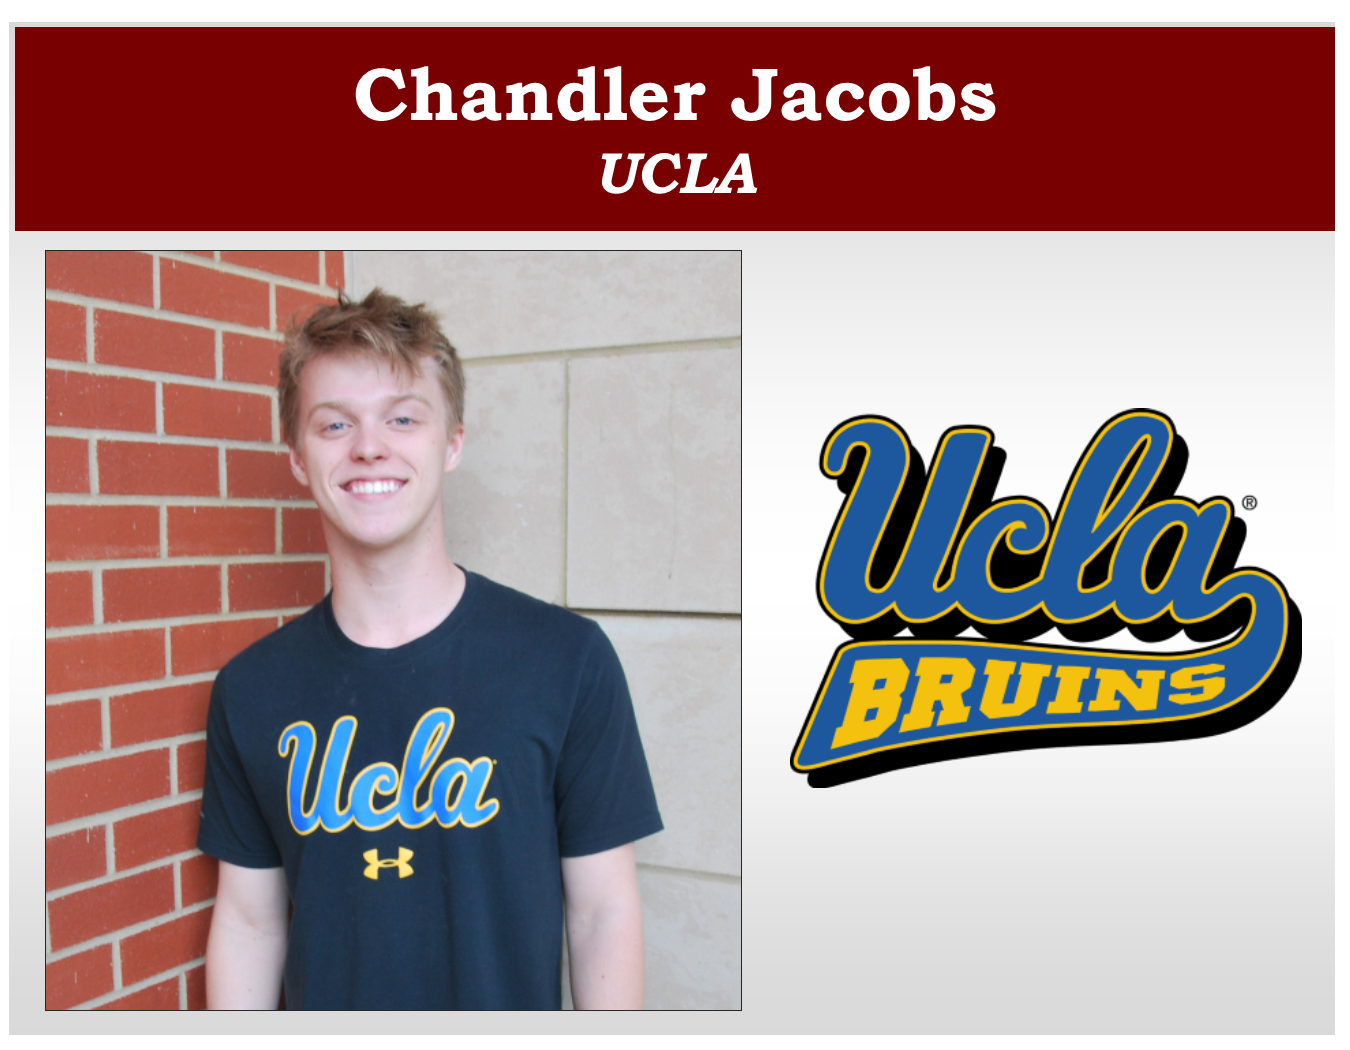 Chandler Jacobs